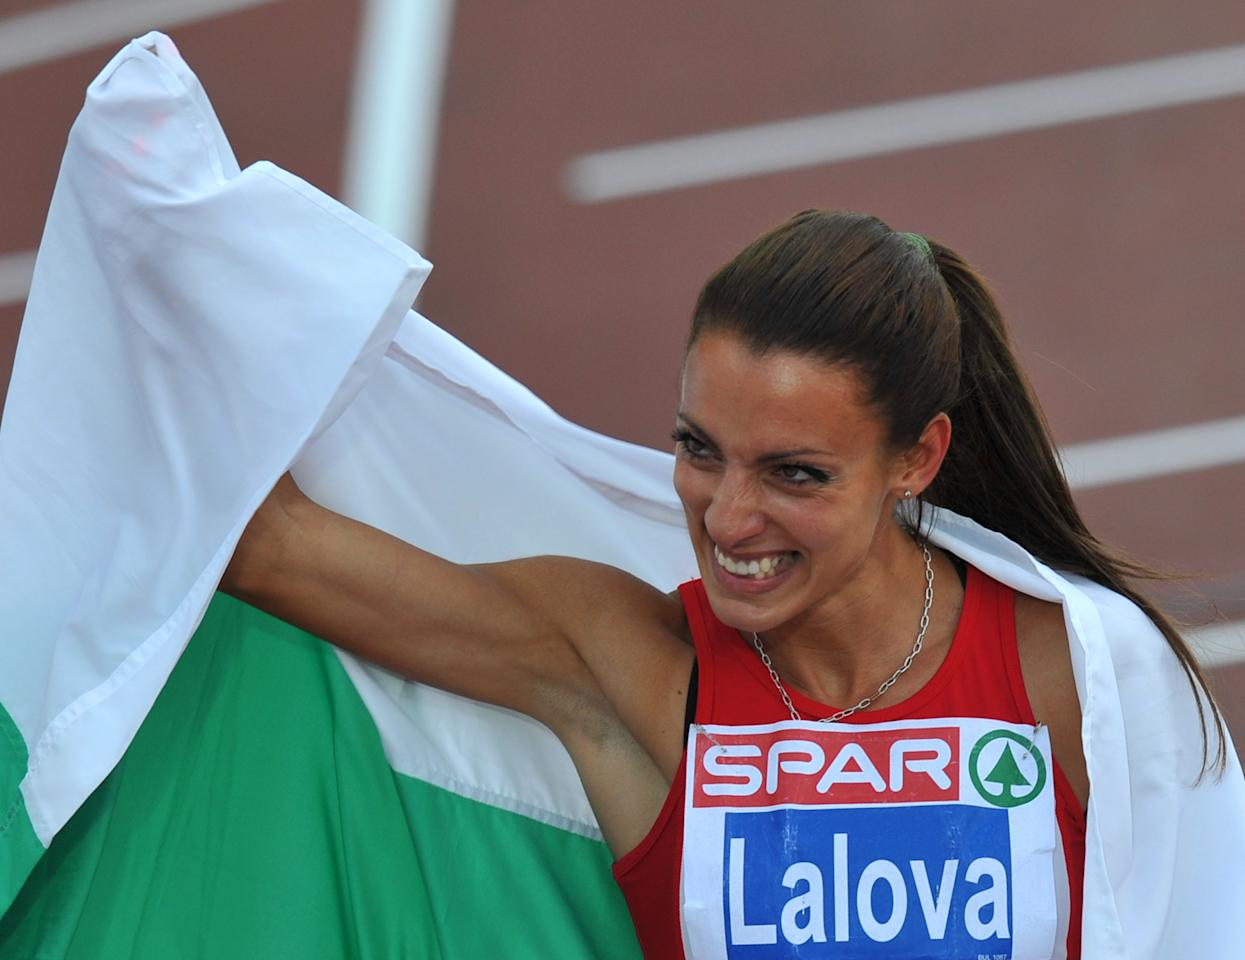 Bulgaria's Ivet Lalova celebrates after winning the women's 100m final at the 2012 European Athletics Championships at the Olympic Stadium in Helsinki on June 28, 2012. Bulgaria's Ivet Lalova won the race ahead of Ukraine's Olesya Povh and Lithuania's Lina Grincikaite.    AFP PHOTO / YURI KADOBNOVYURI KADOBNOV/AFP/GettyImages